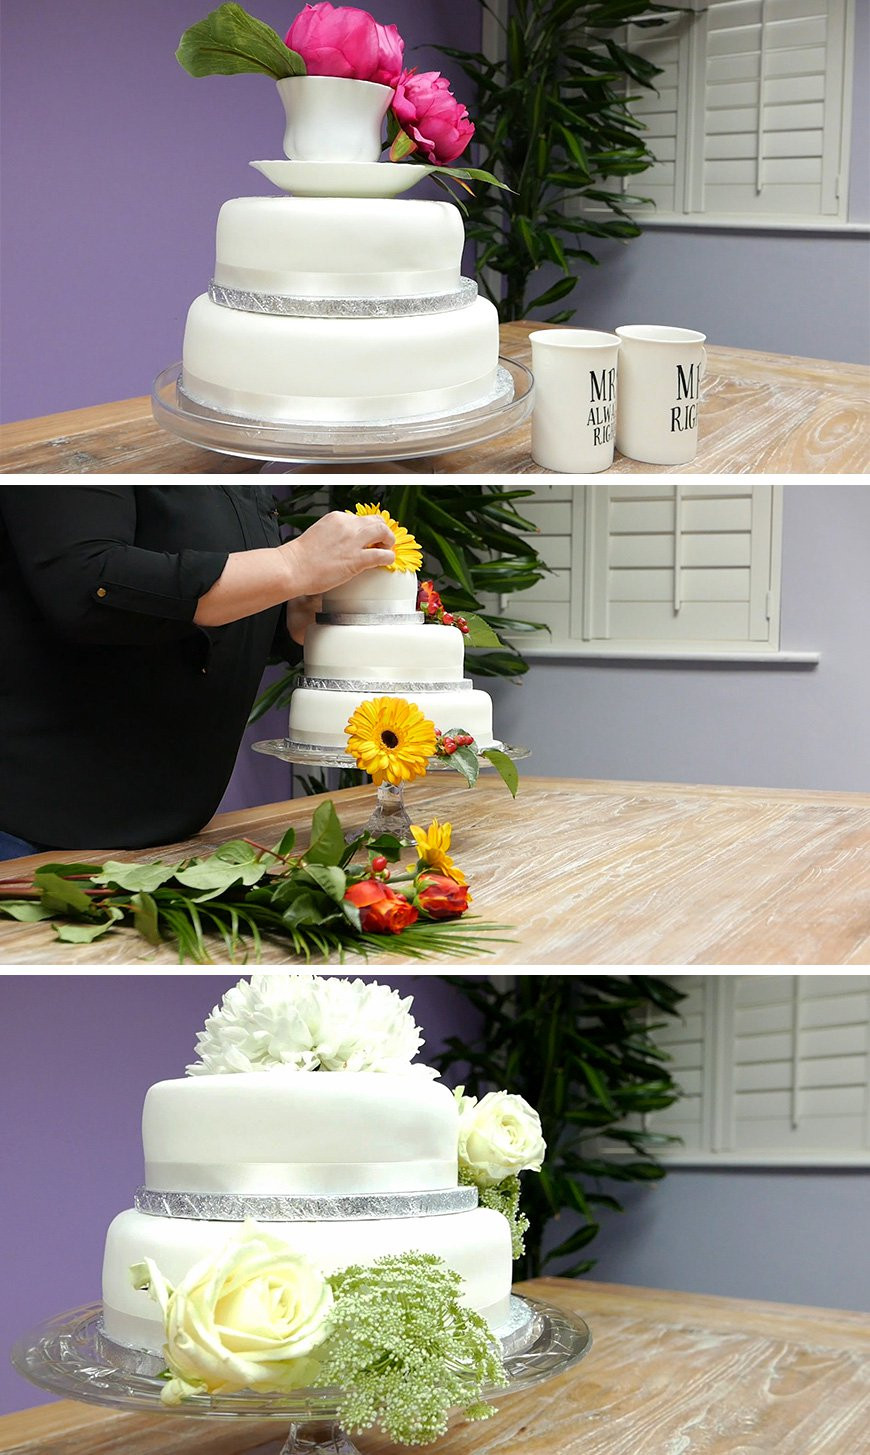 Best ideas about DIY Wedding Cake . Save or Pin Amazing DIY Wedding Cakes For Under £100 Now.